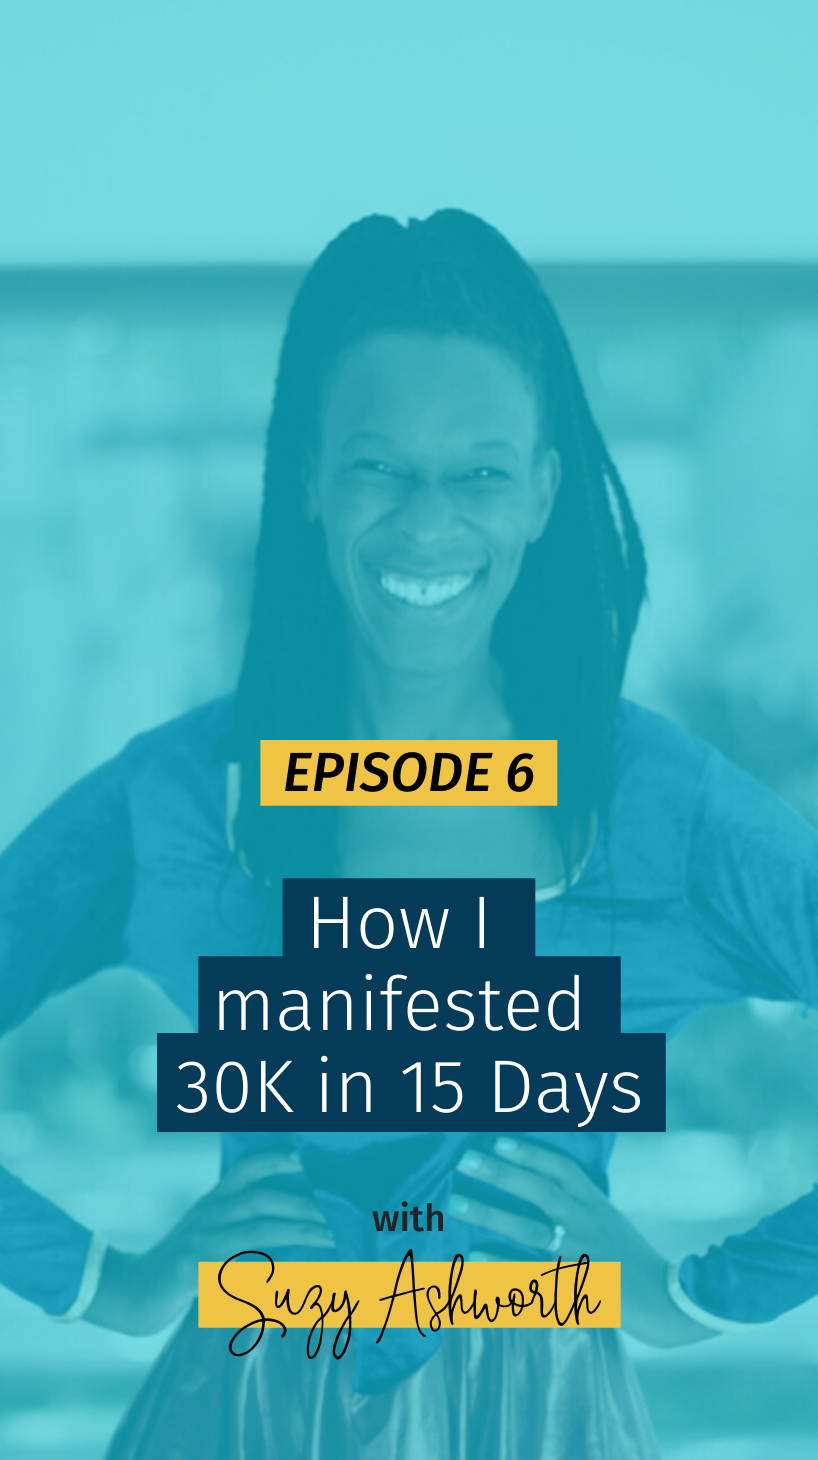 006 How I manifested 30K in 15 Days